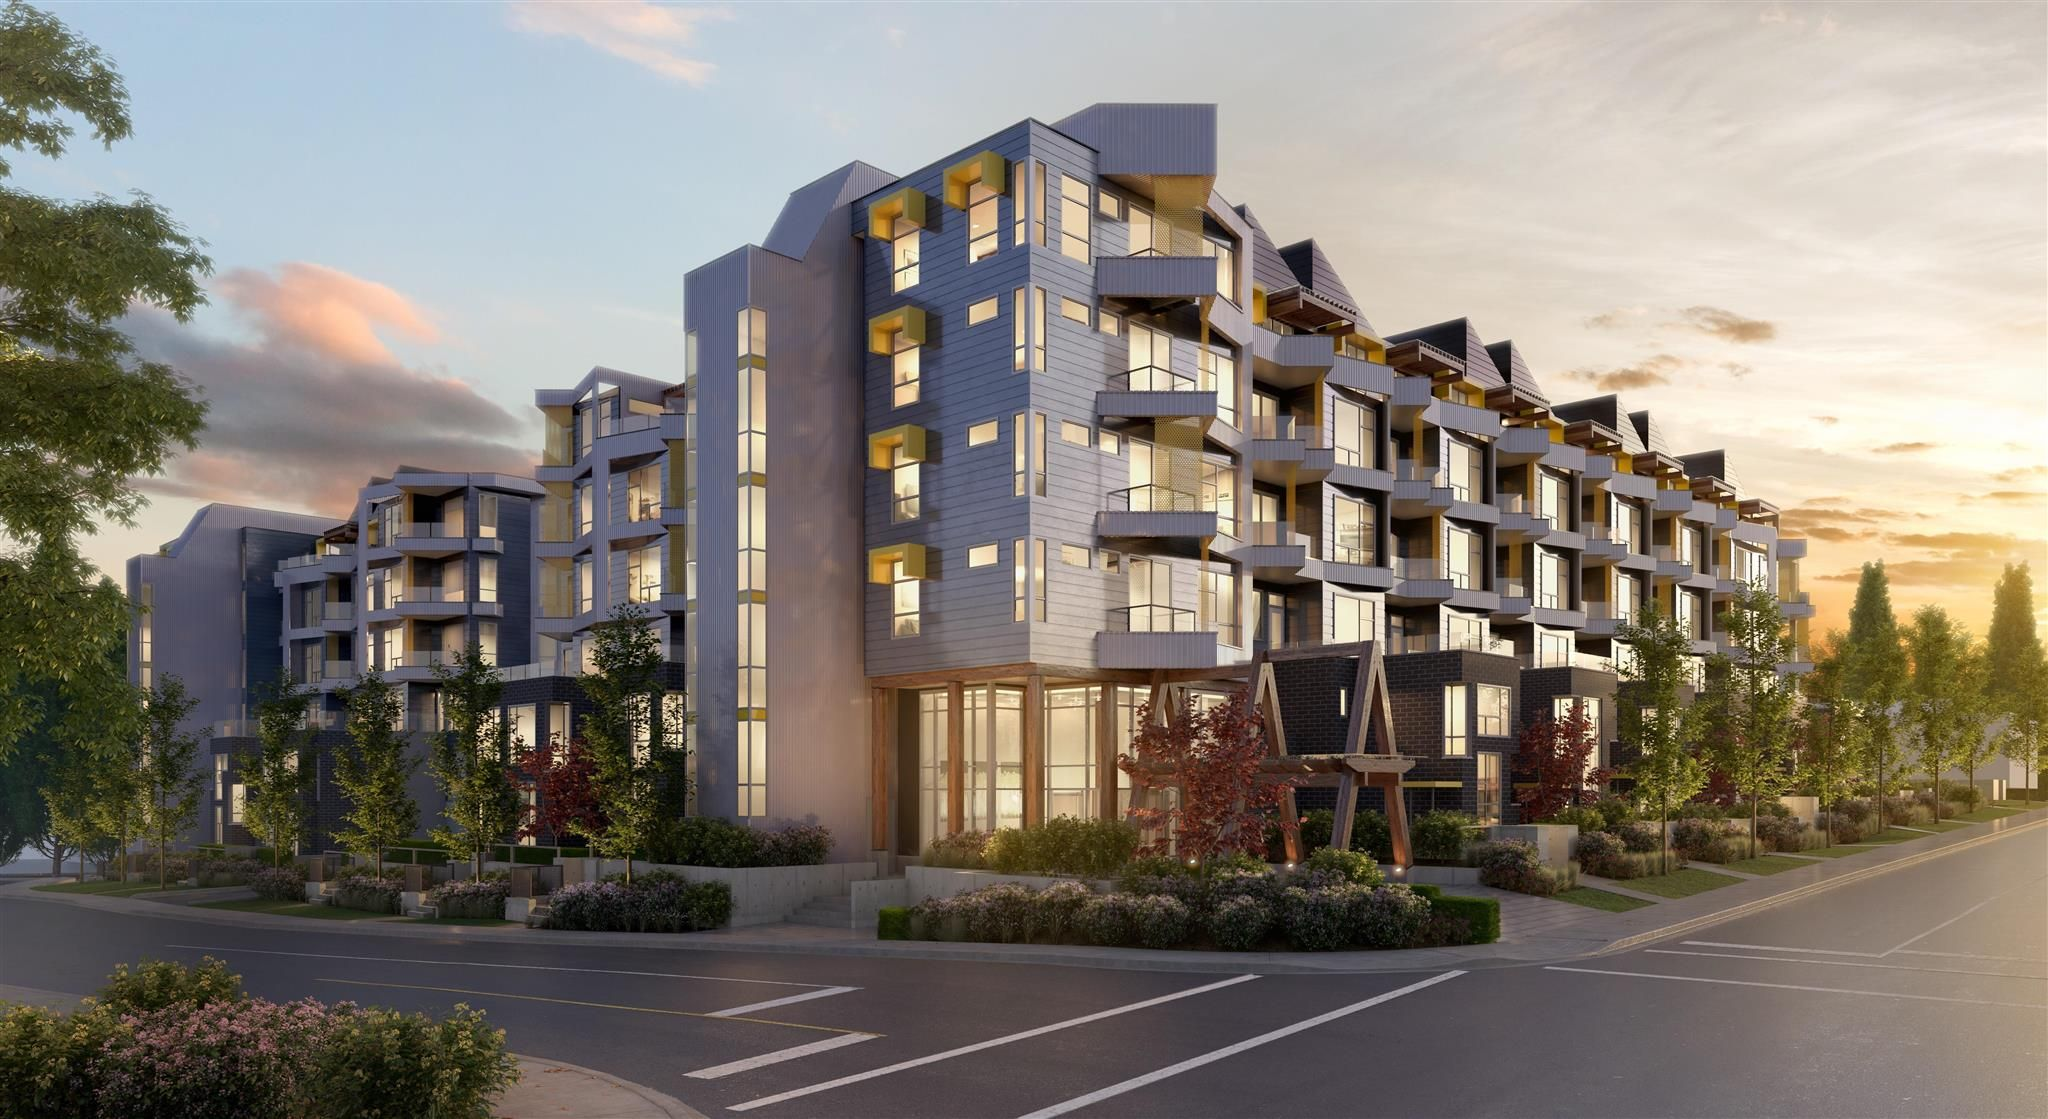 """Main Photo: 610 32838 LANDEAU Place in Abbotsford: Central Abbotsford Condo for sale in """"Court"""" : MLS®# R2616803"""